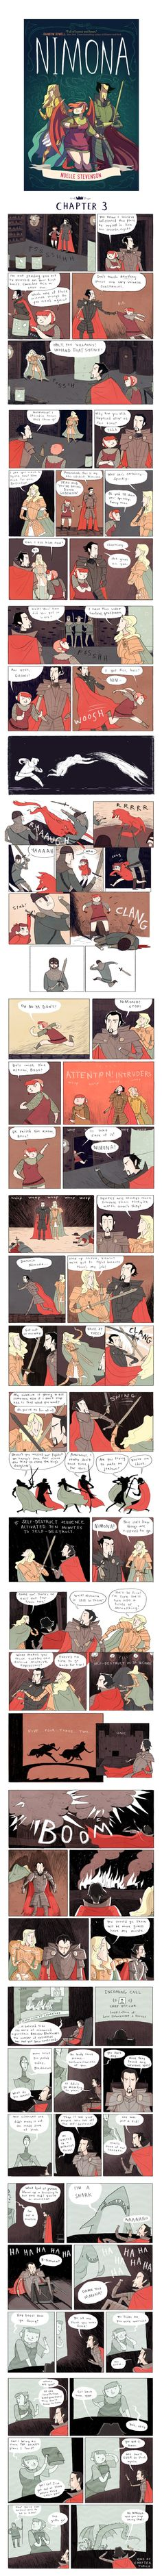 Nimona Chapter 3 by Noelle Stevenson